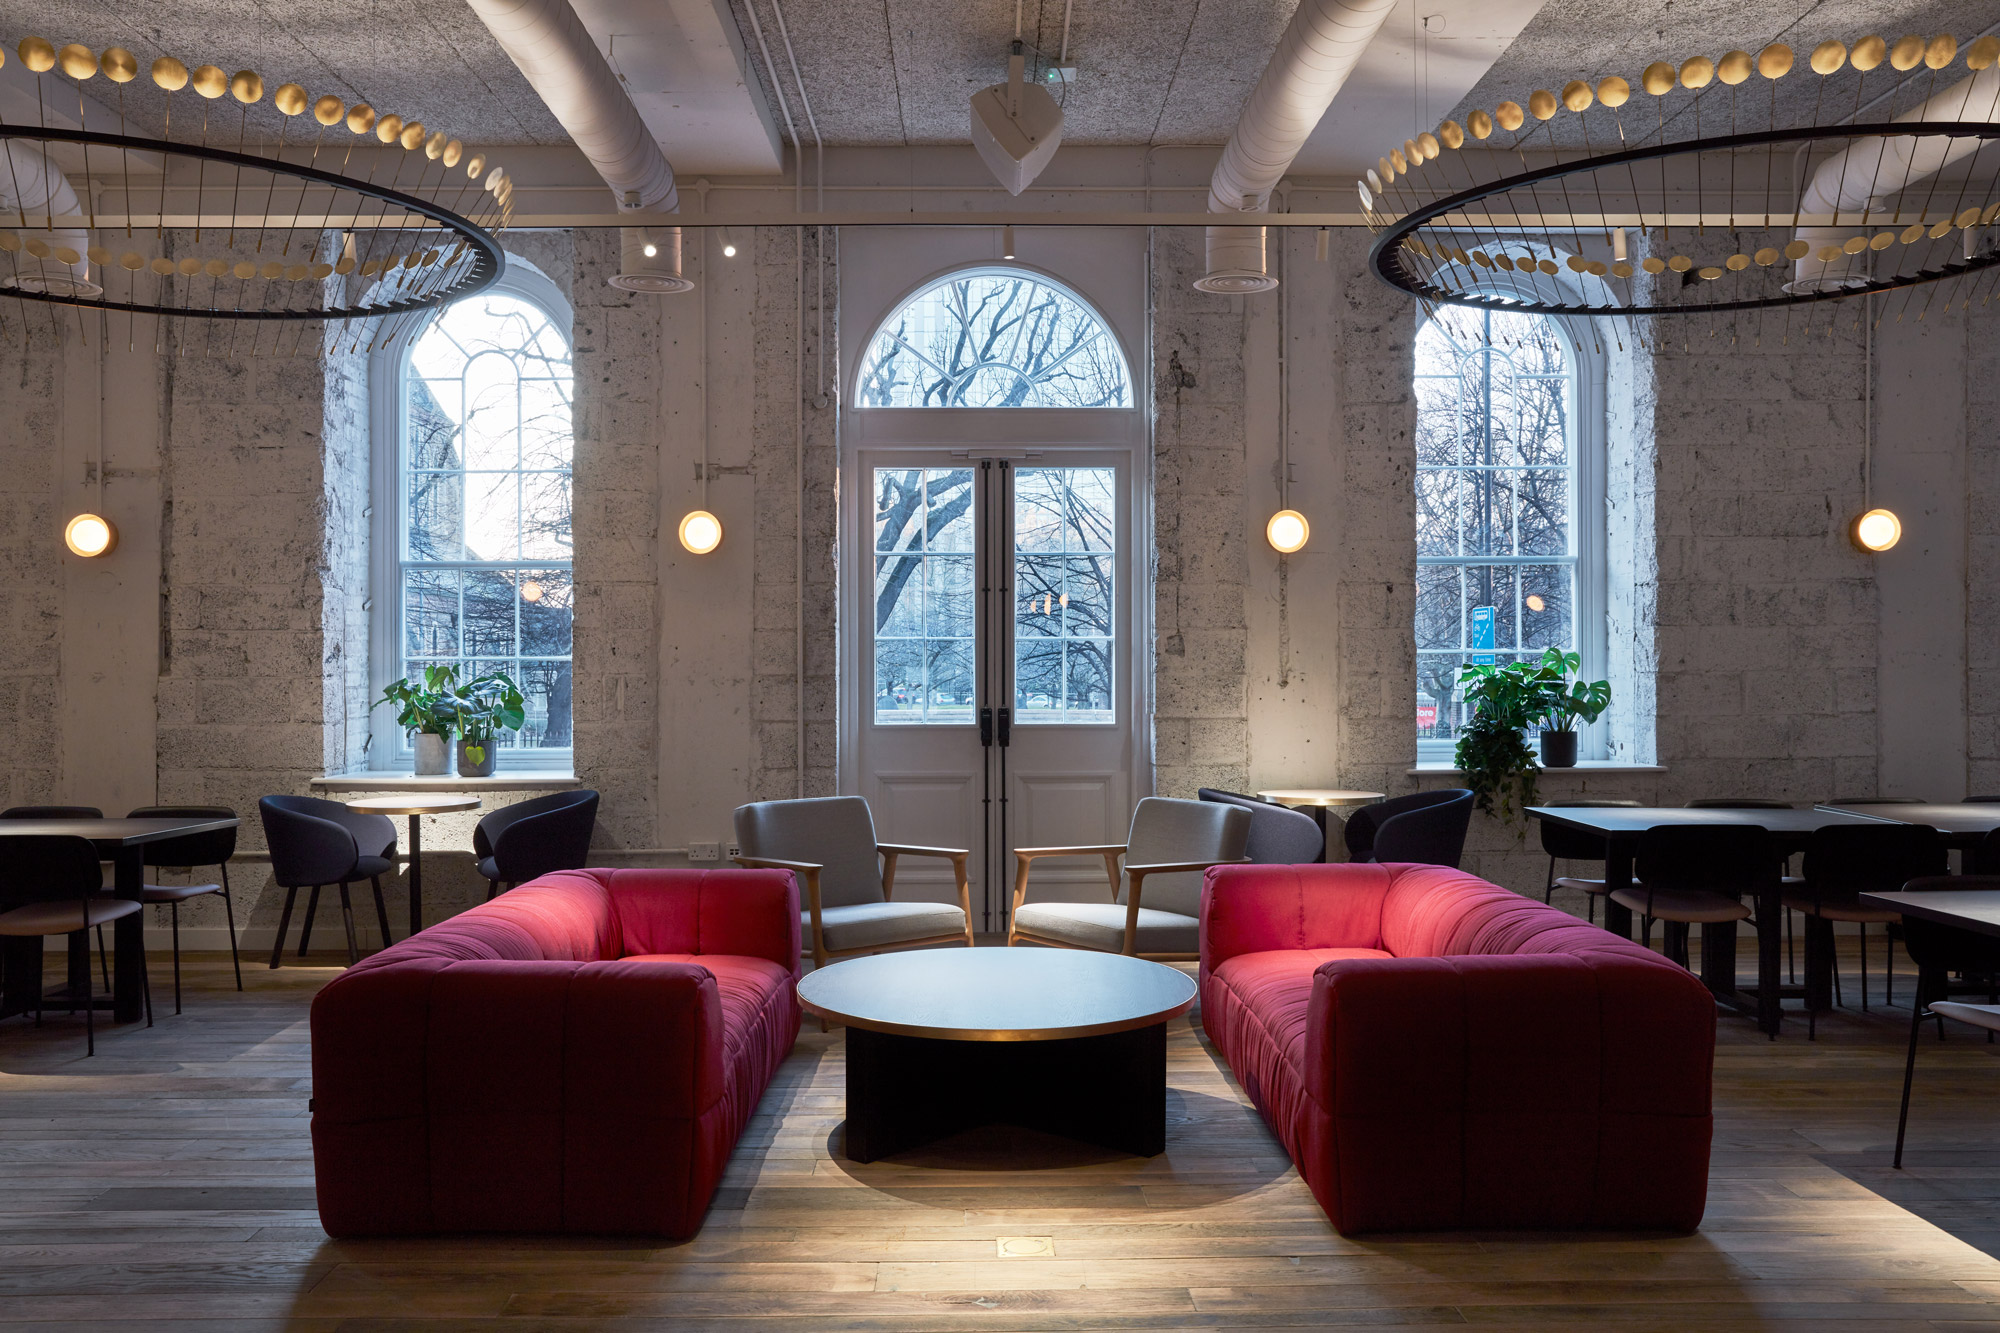 Two red sofas face each other with round coffee table in between and oak floorboards